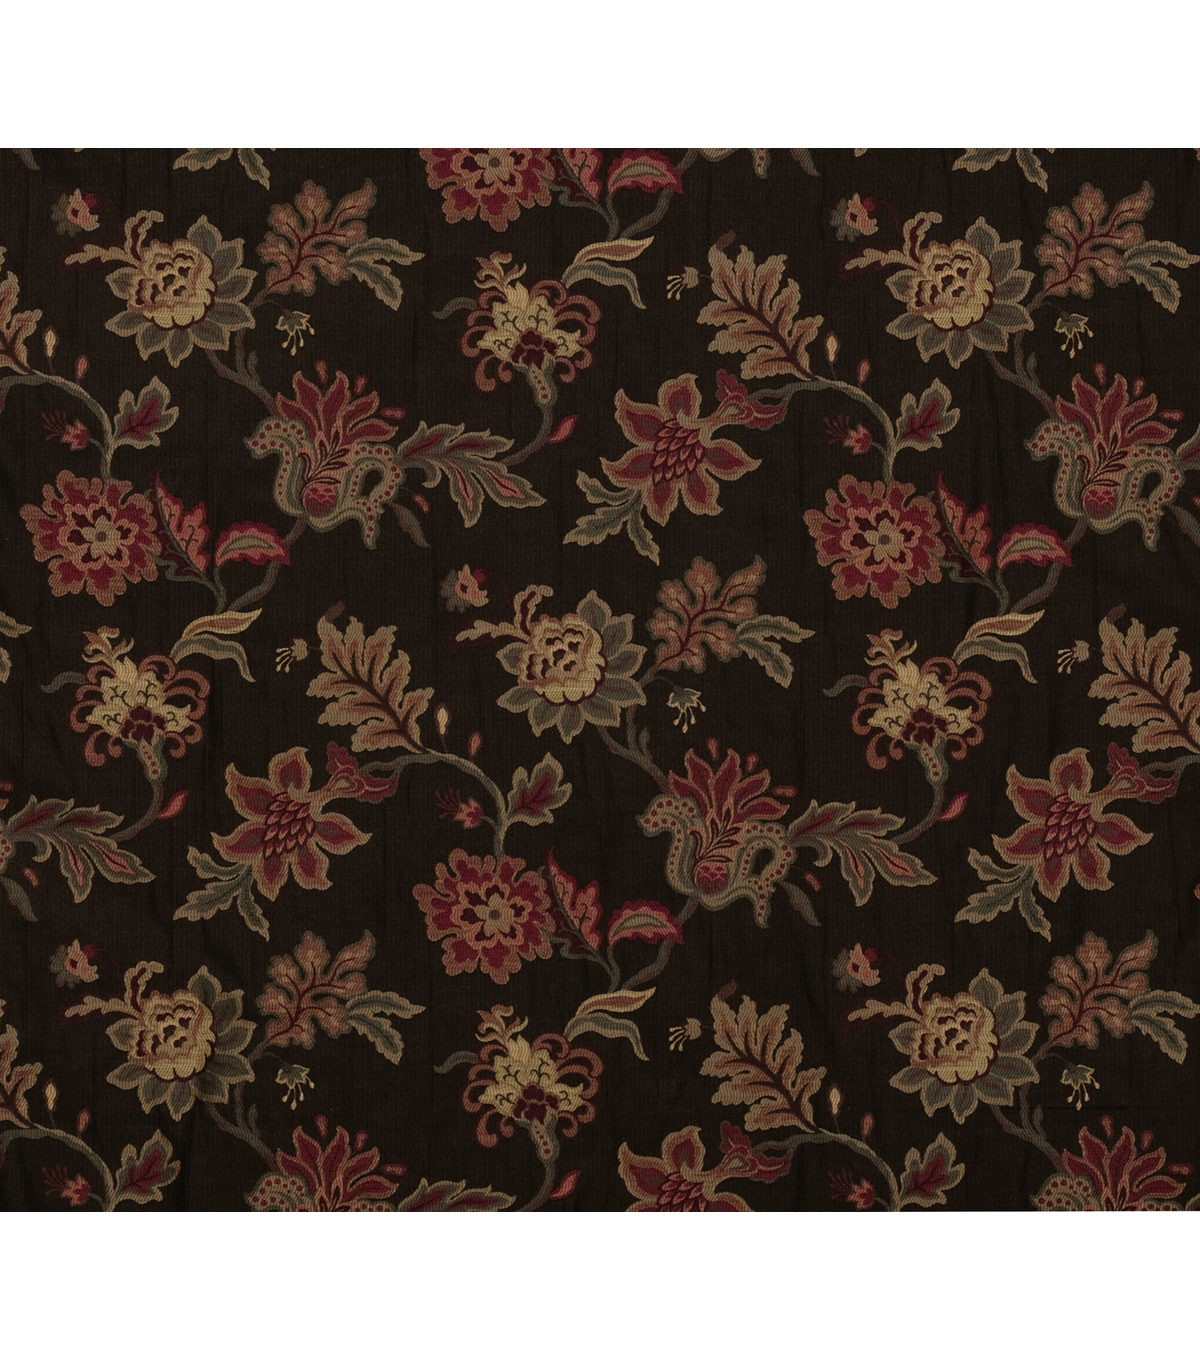 Home Decor 8\u0022x8\u0022 Fabric Swatch-Jaclyn Smith Percy-Jet